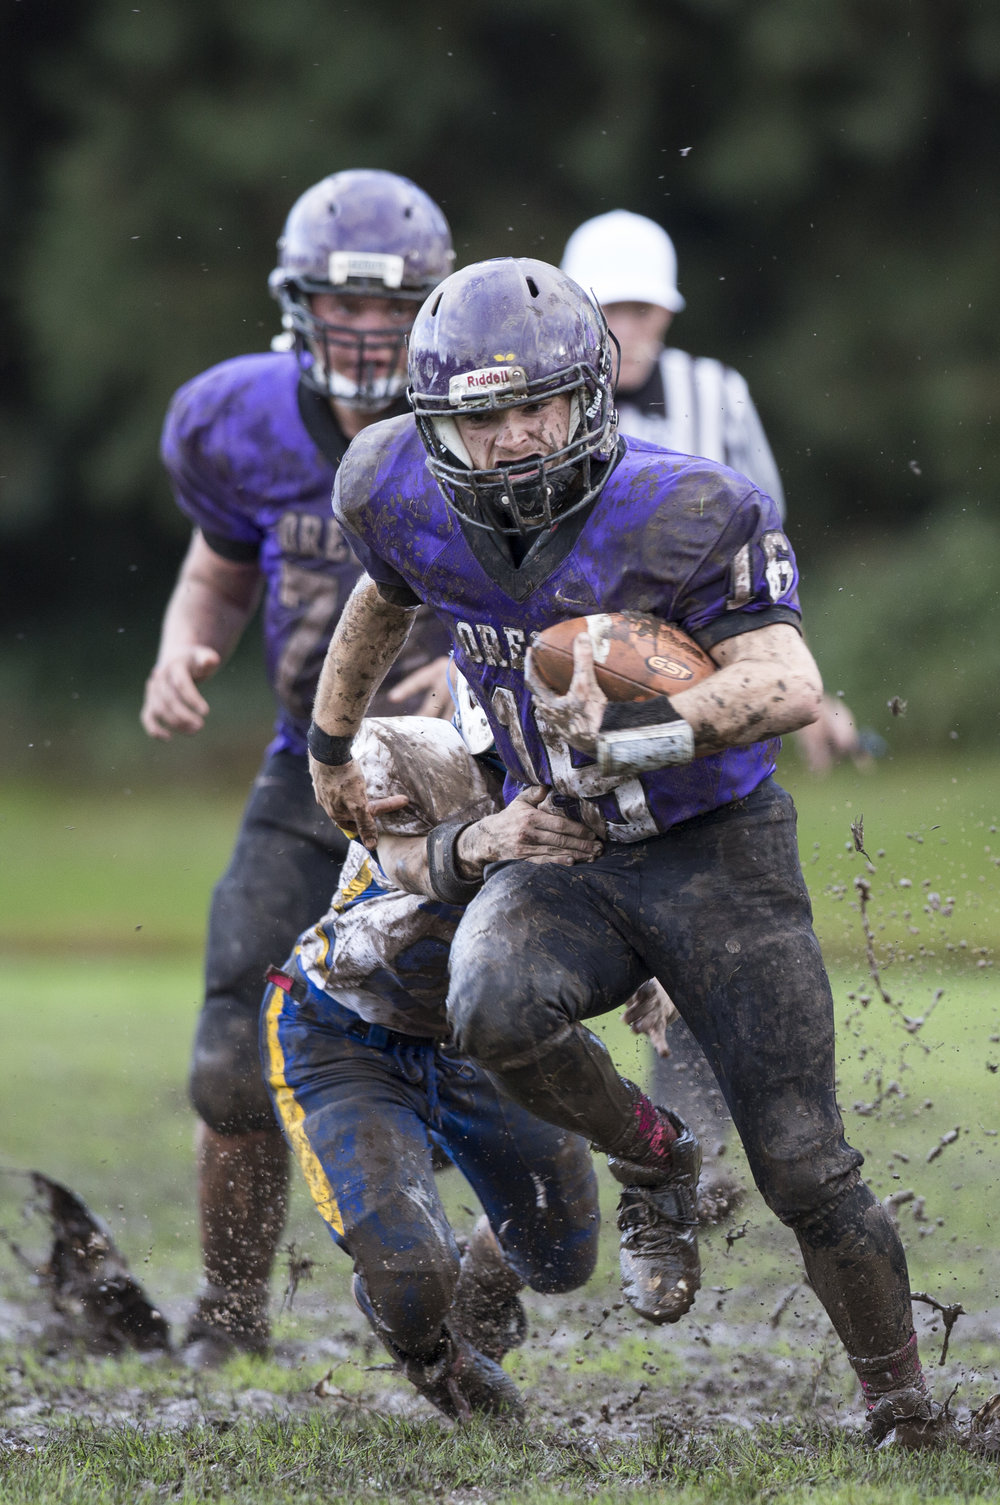 Oregon School for the Deaf junior Hunter Lively (#16) powers through the muddy field. Oregon School for the Deaf defeated Jewell 48-19.